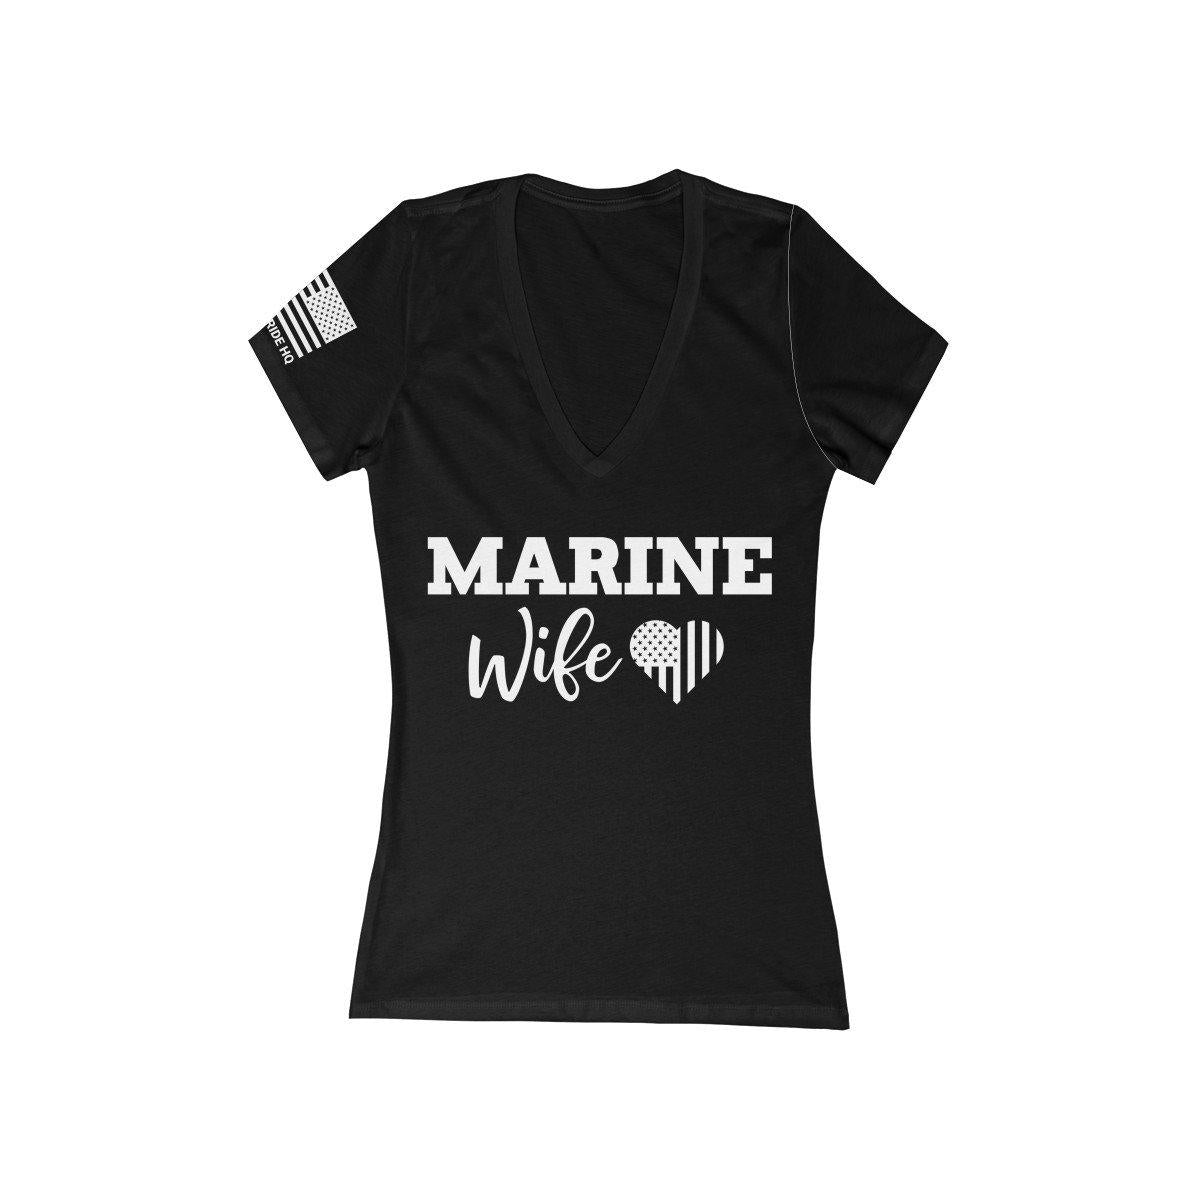 Marine Wife Women's V-Neck Tee